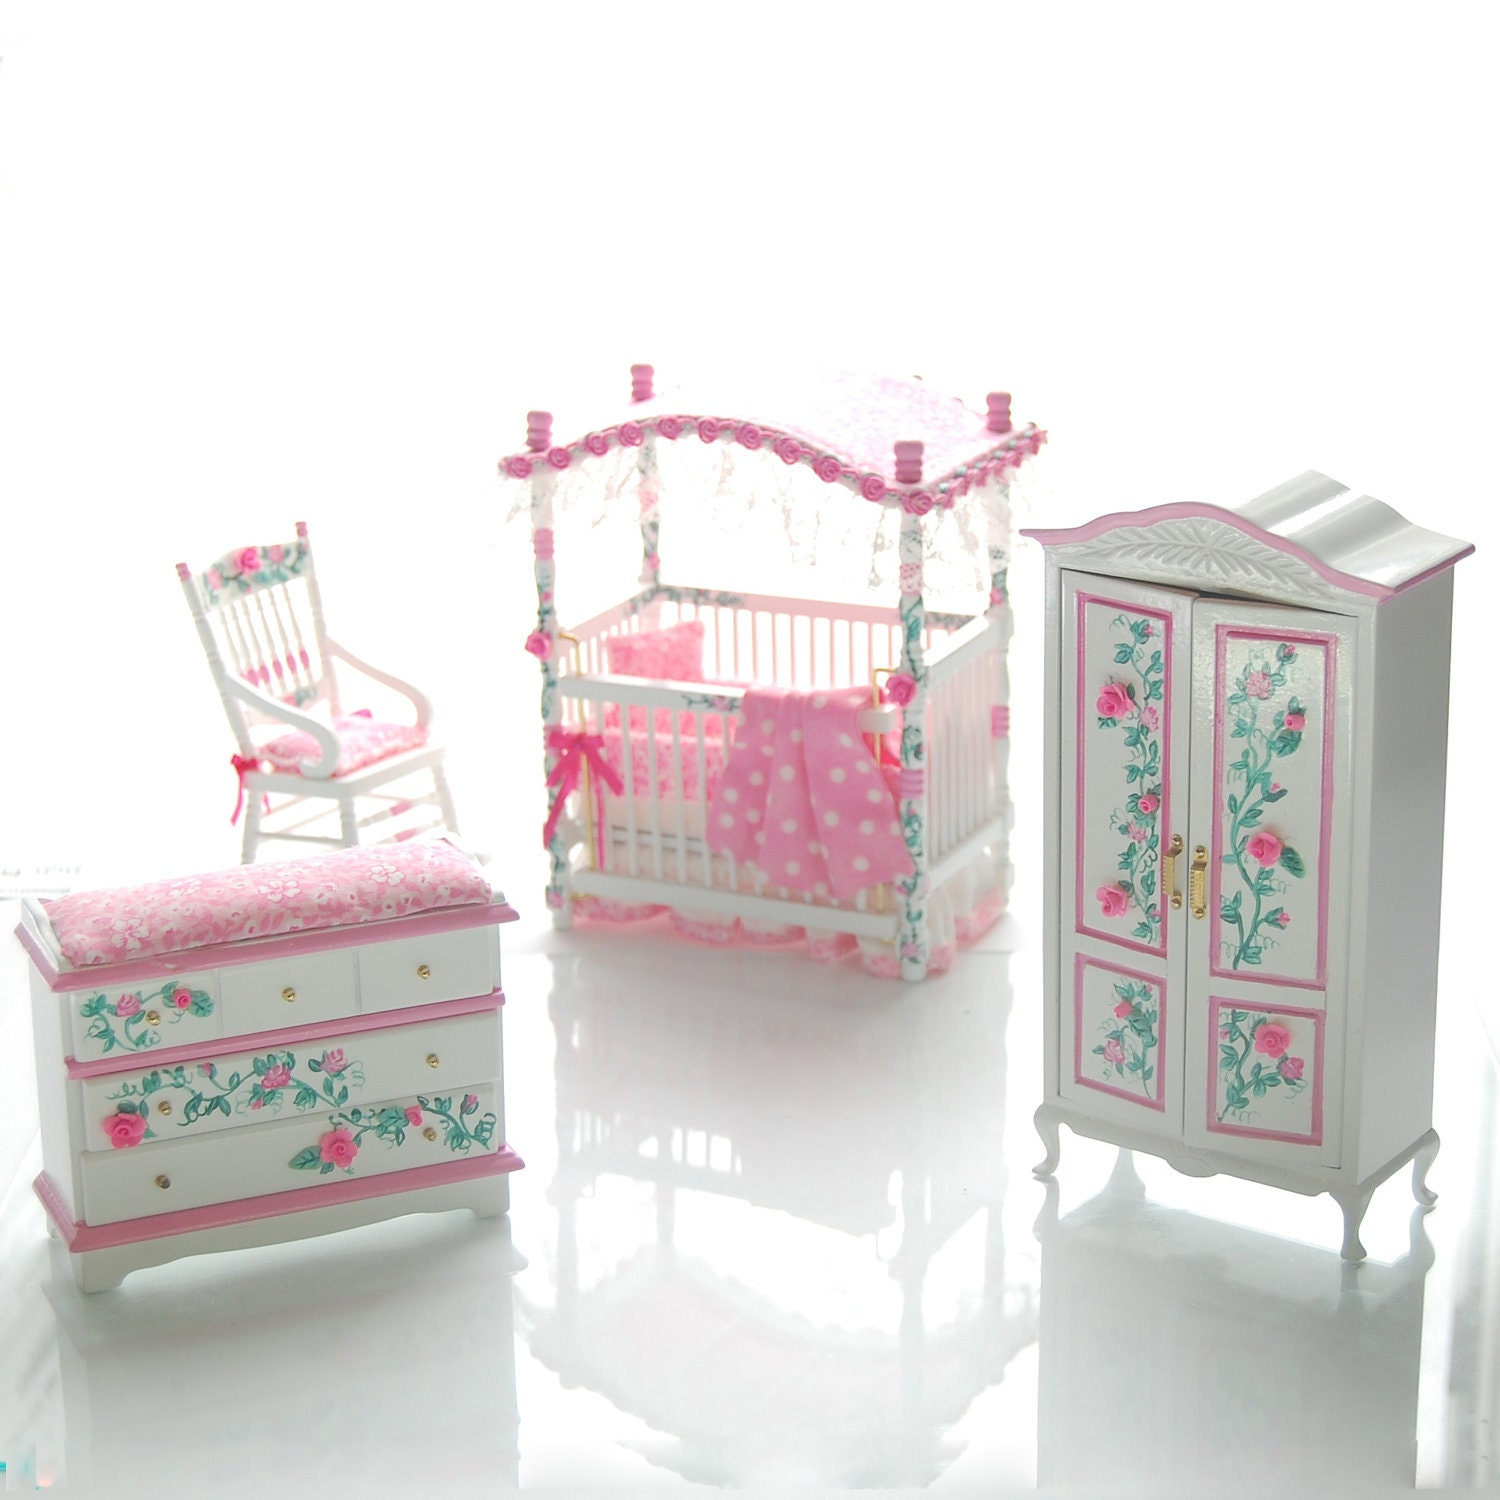 PINK & WHITE Victorian Baby Nursery Hand-Painted Dollhouse